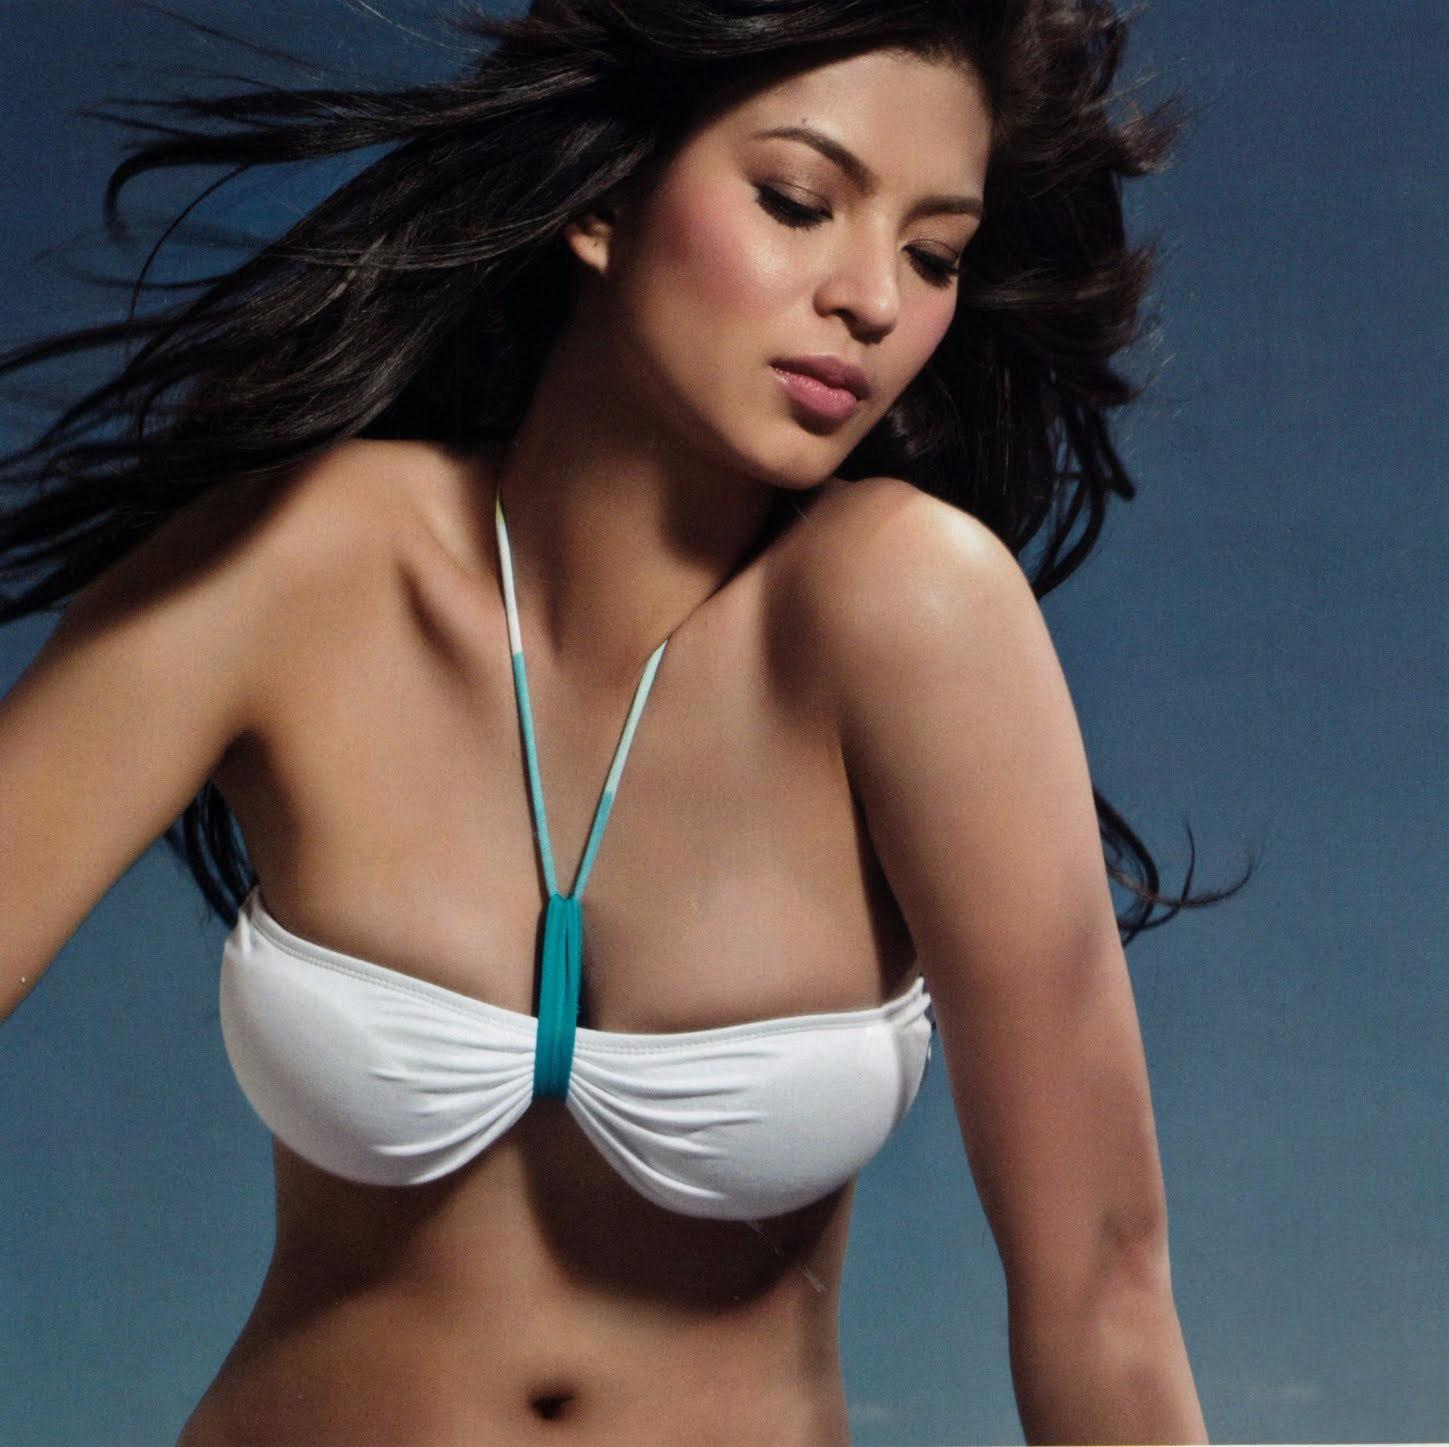 Angel locsin new images